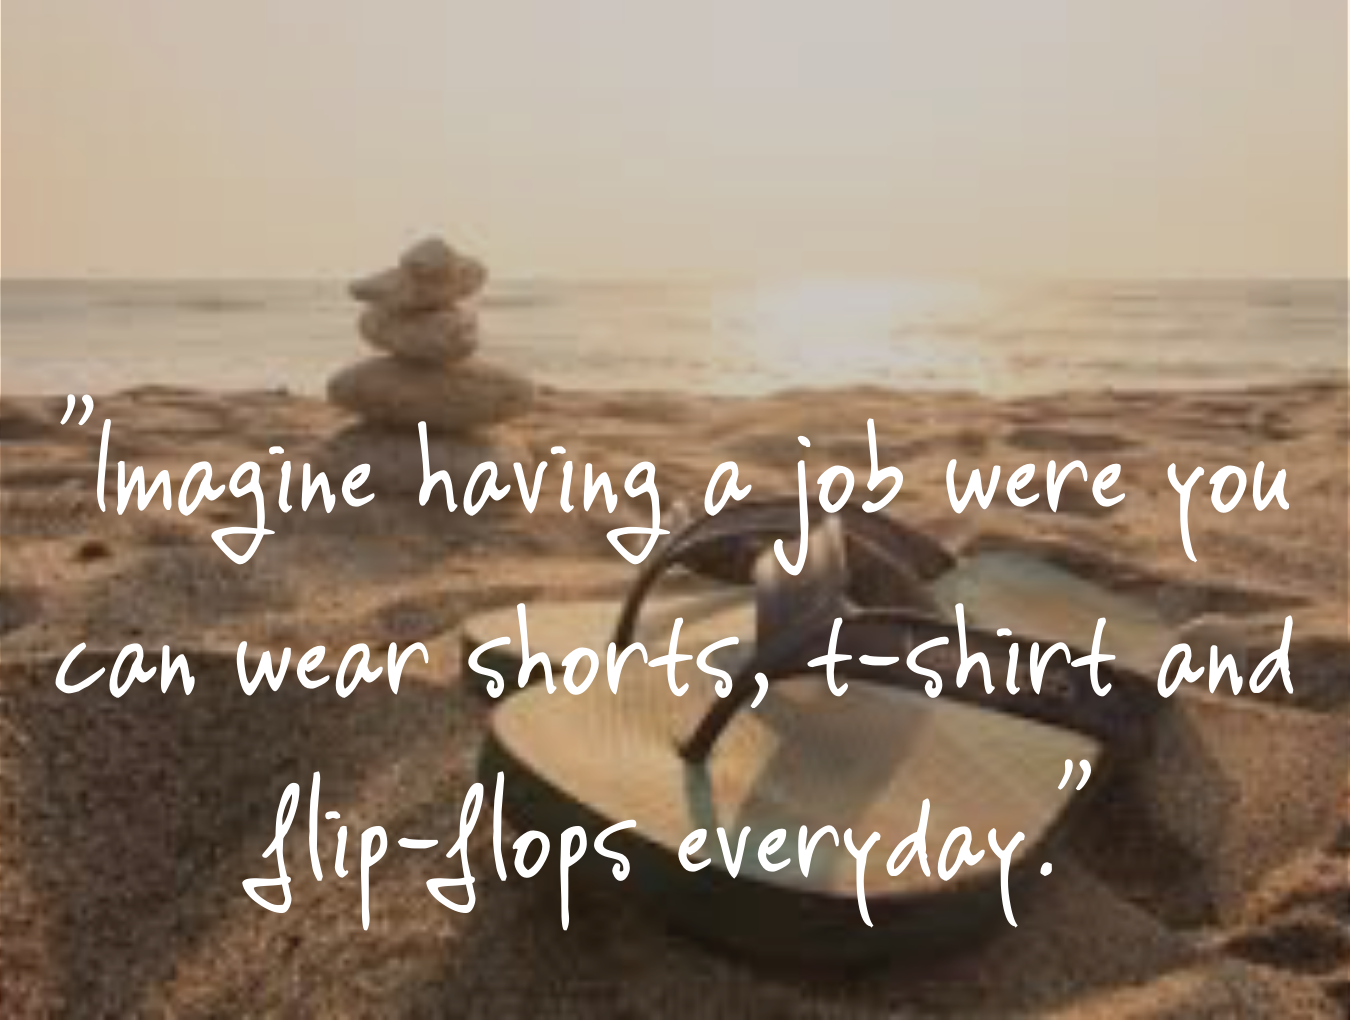 Imagine having a job were you can wear shorts, t-shirt and flip-flops everyday